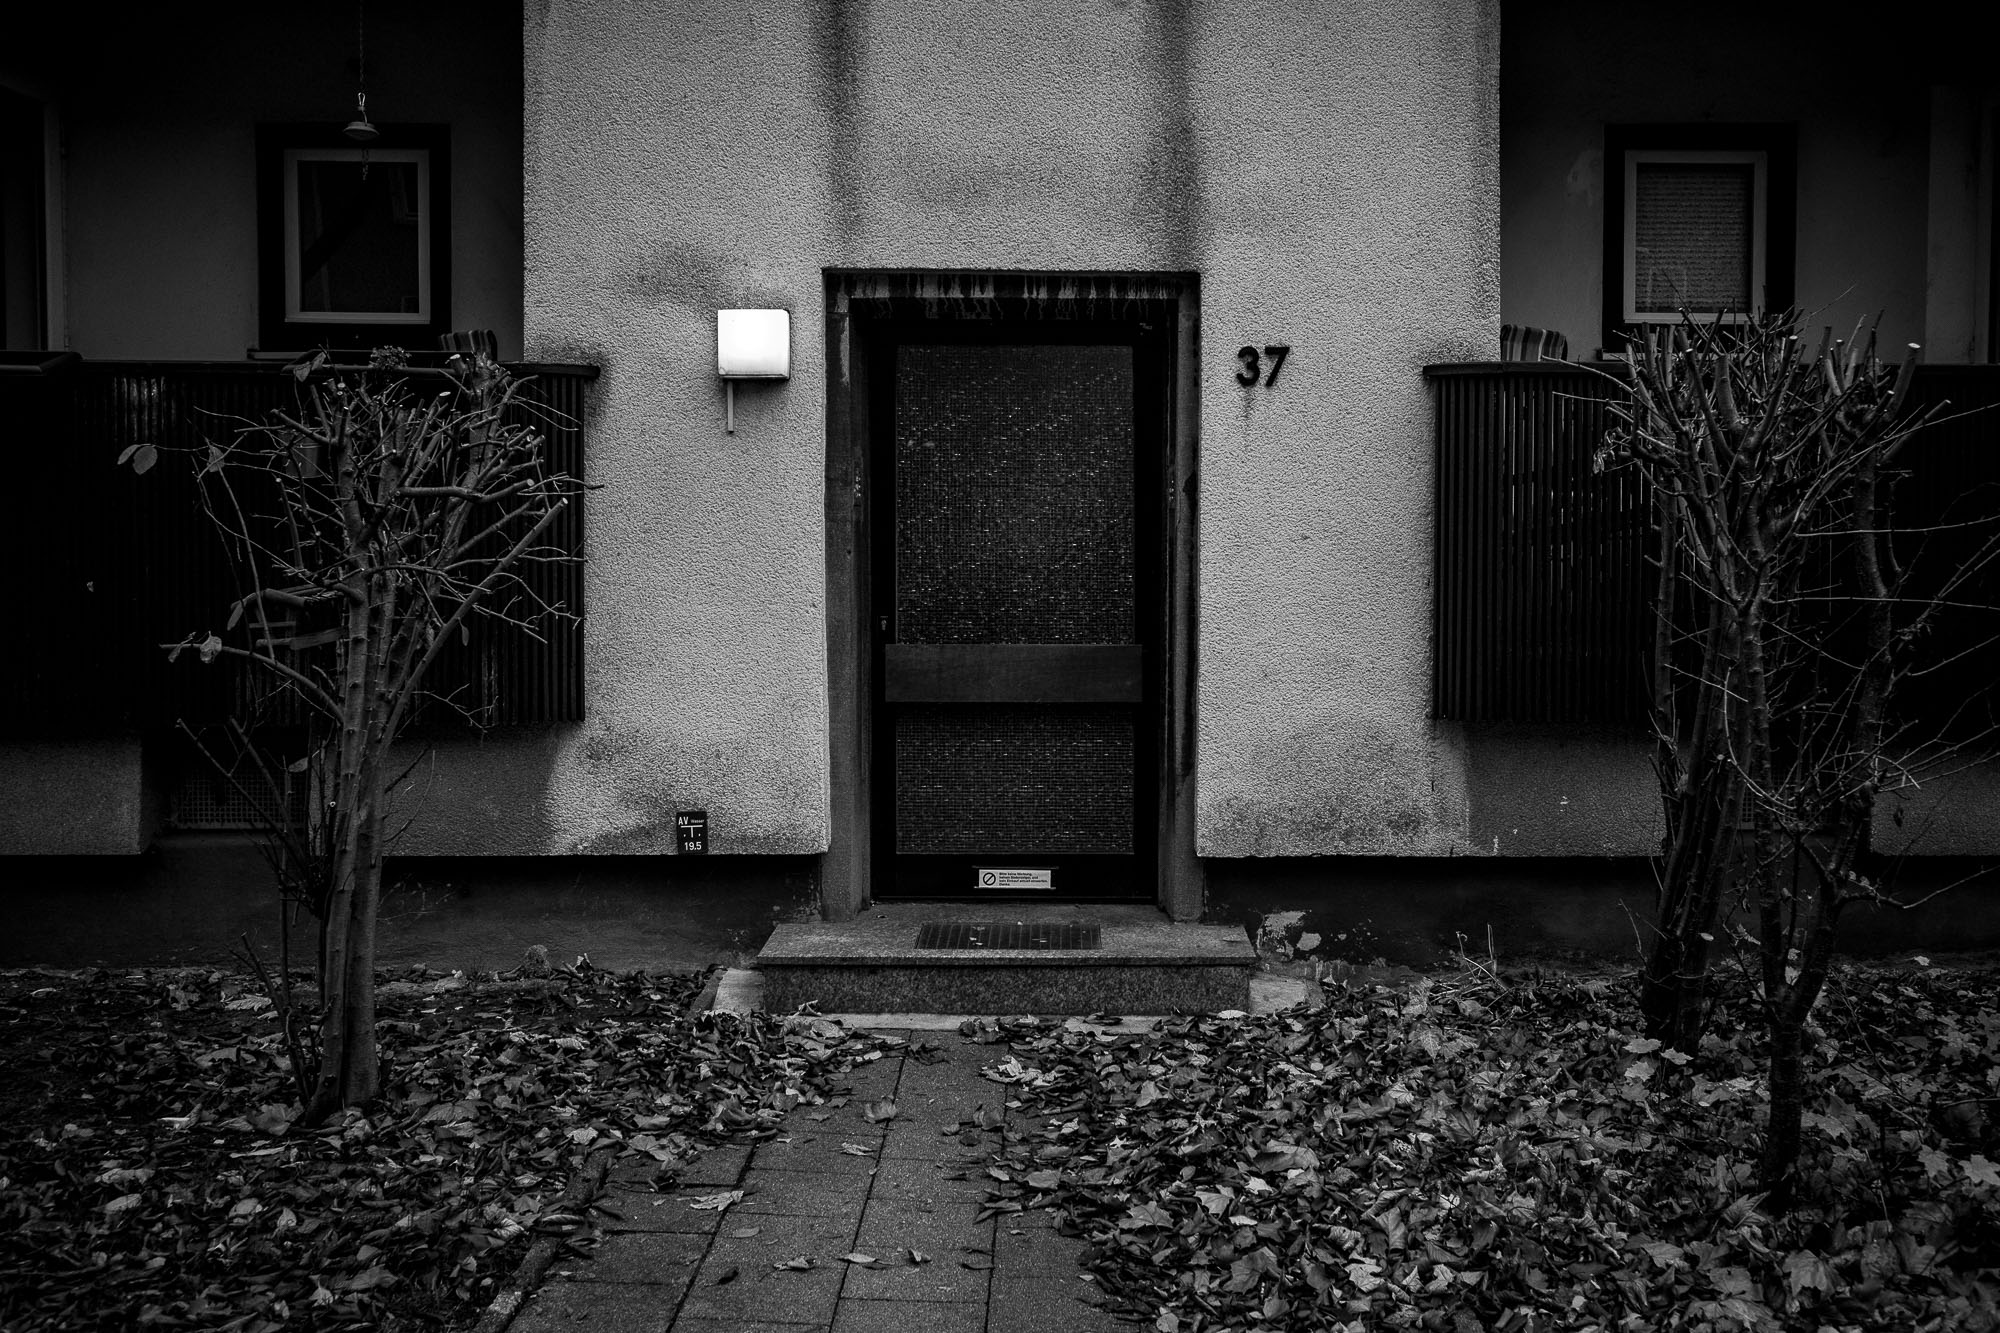 Building entrance, with leaves on the ground, dark